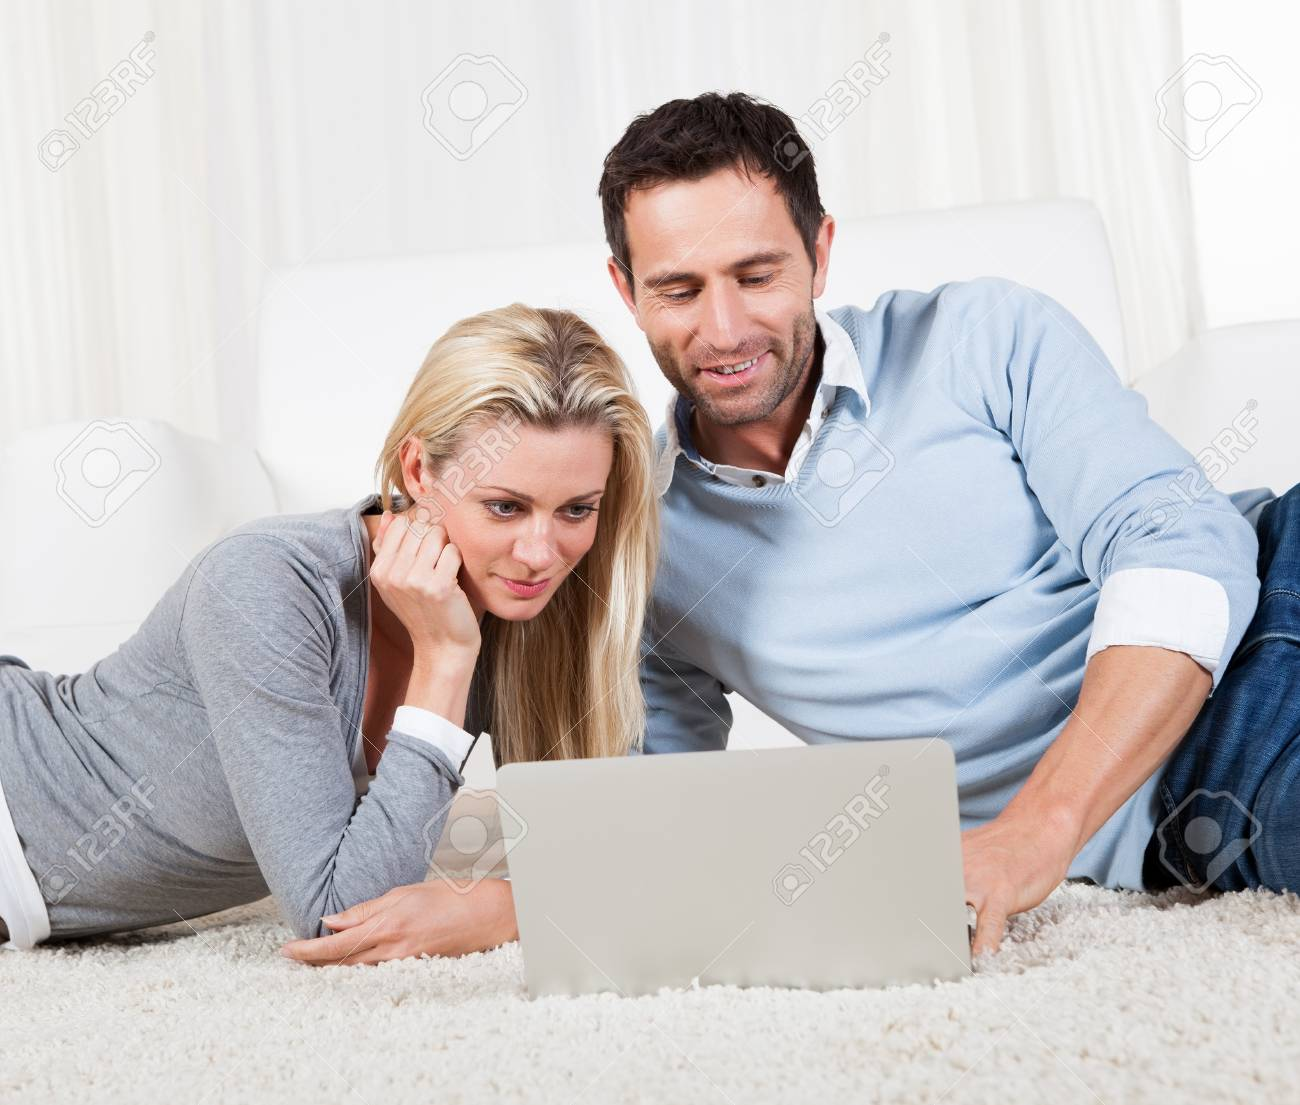 Attractive casual couple lying on their stomachs on a carpet with a laptop reading the information on the screen together Stock Photo - 16874277